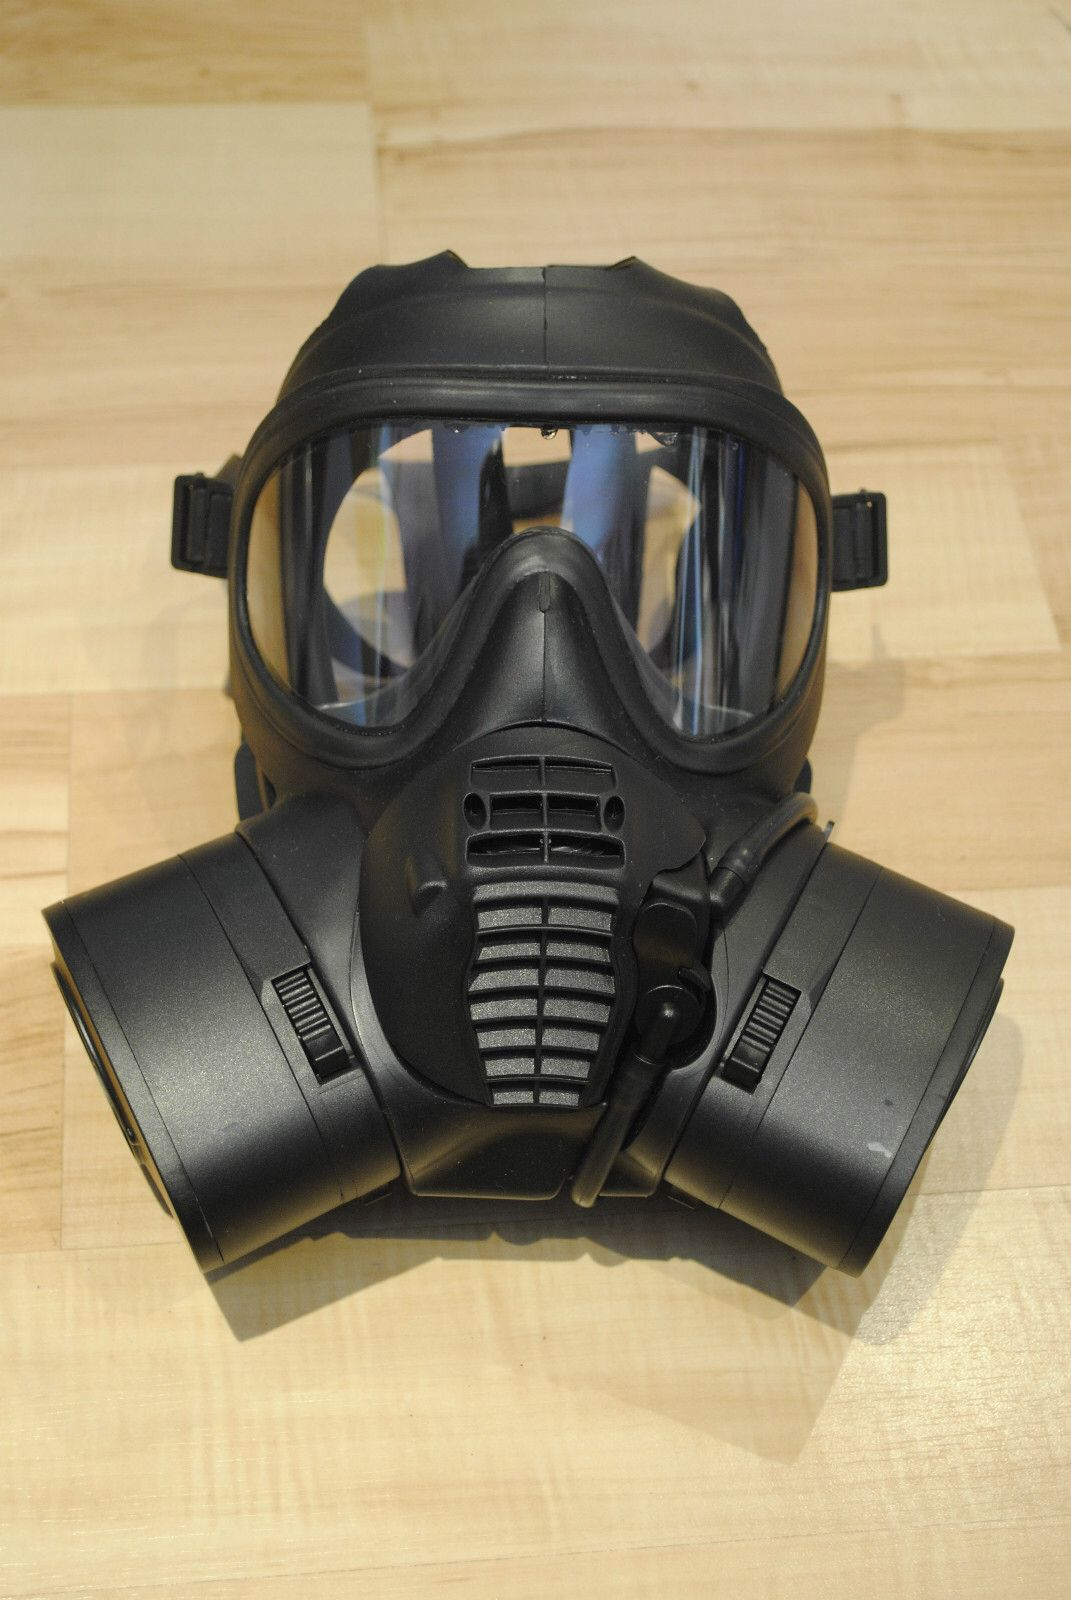 M60 military grade protective mask Apocalypse gear